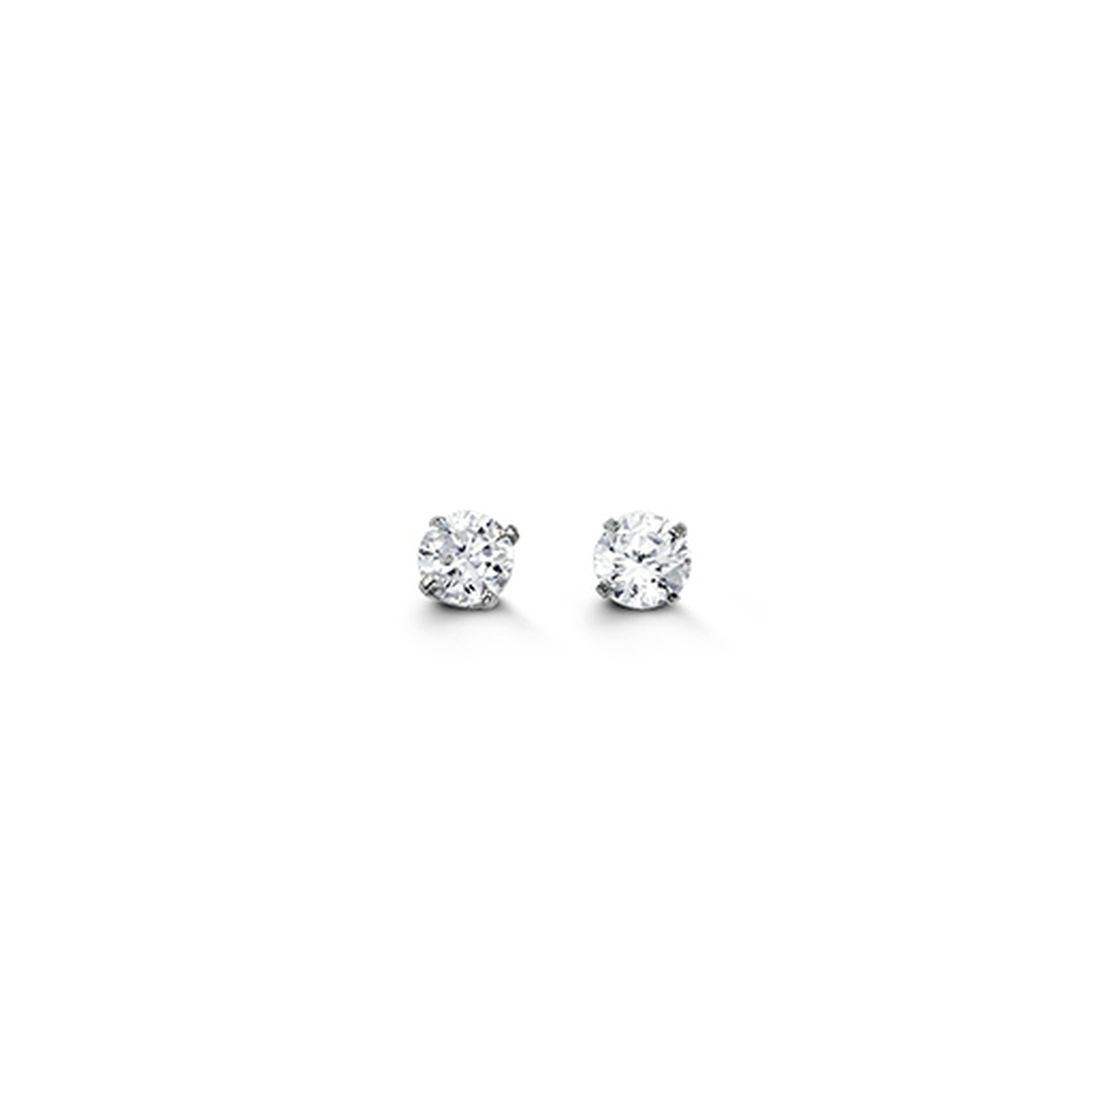 White Gold Round Brilliant Cut Cubic Zirconia Stud Earrings